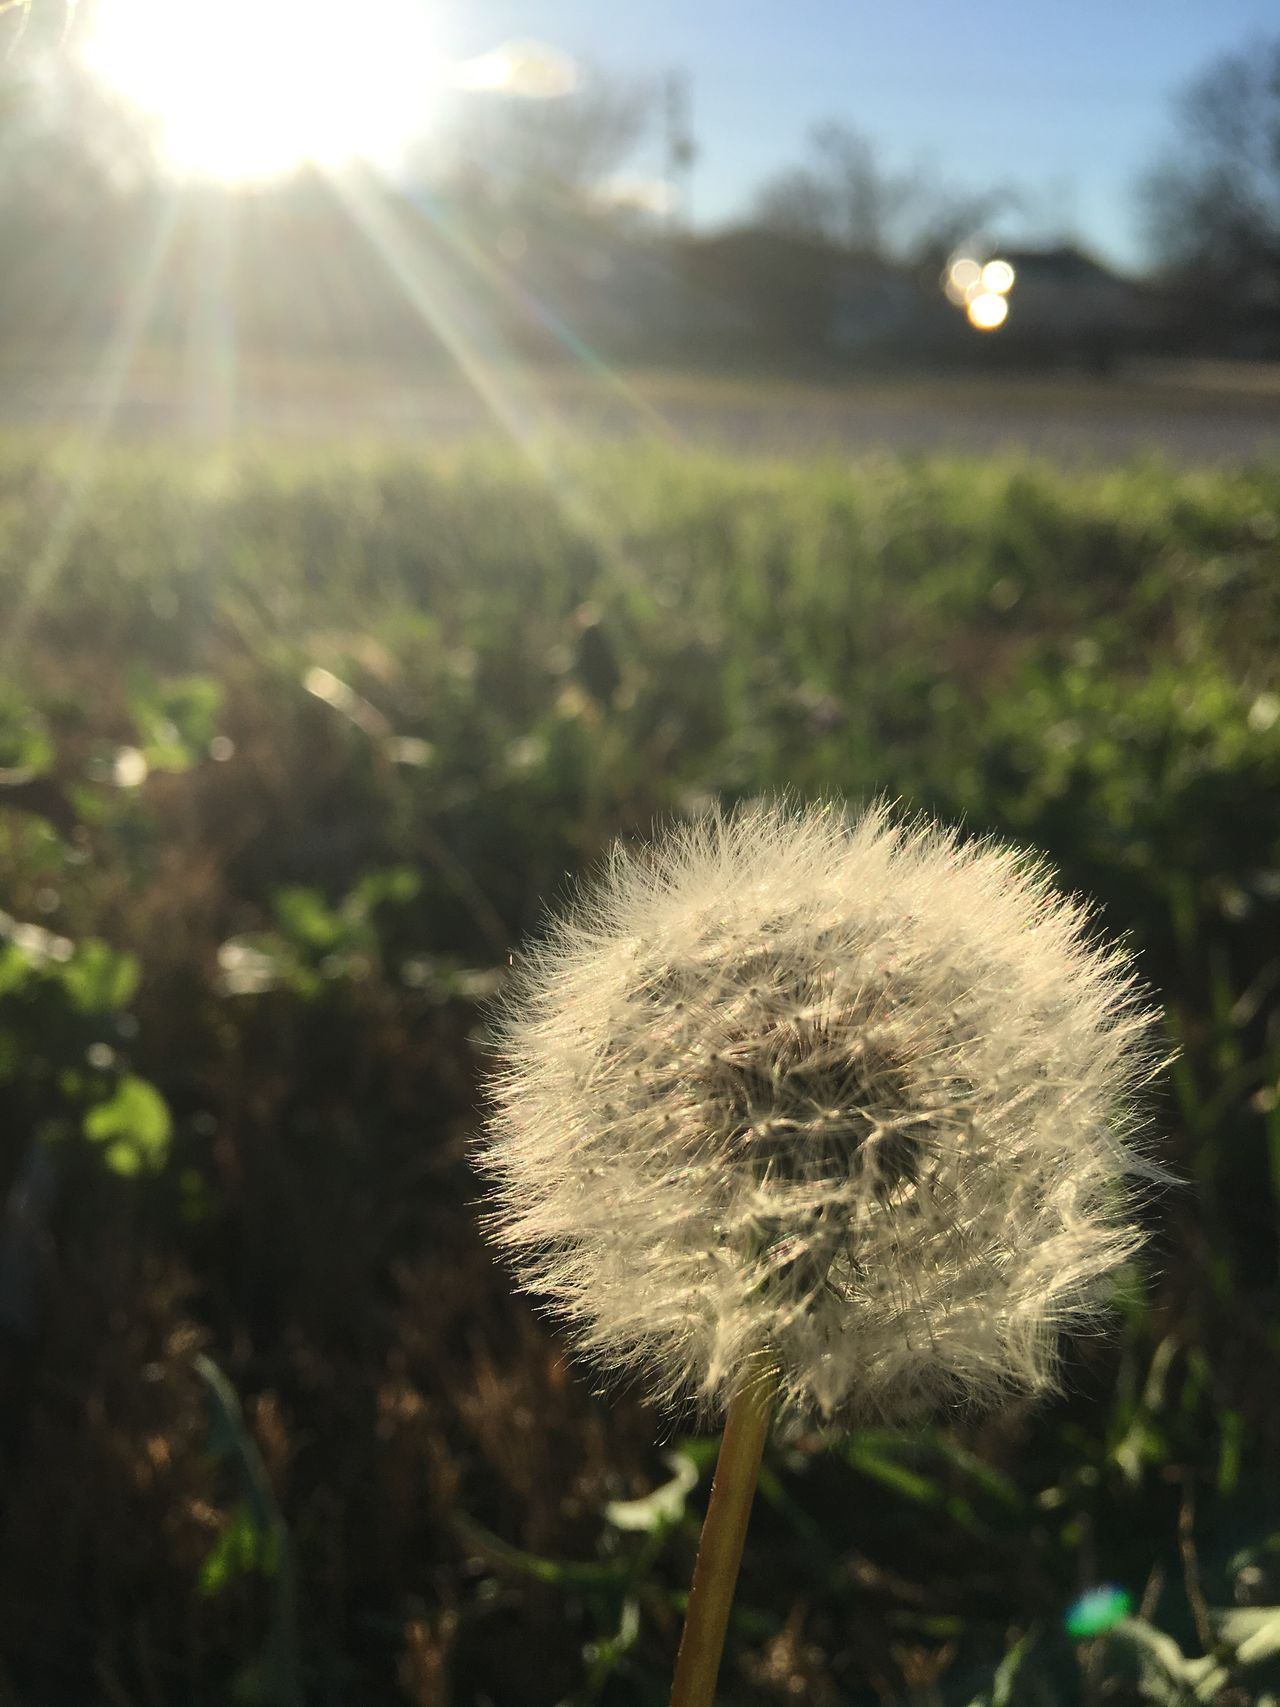 Raw Dandelion Wishes Wish IPhoneography IPhone Flower Lens Flare Sunlight Sunbeam Sun Sky Softness Flowers Nature Plant Growth Beauty In Nature No People Fragility Outdoors Grass Freshness Close-up Flower Head Day Dandelion Seed